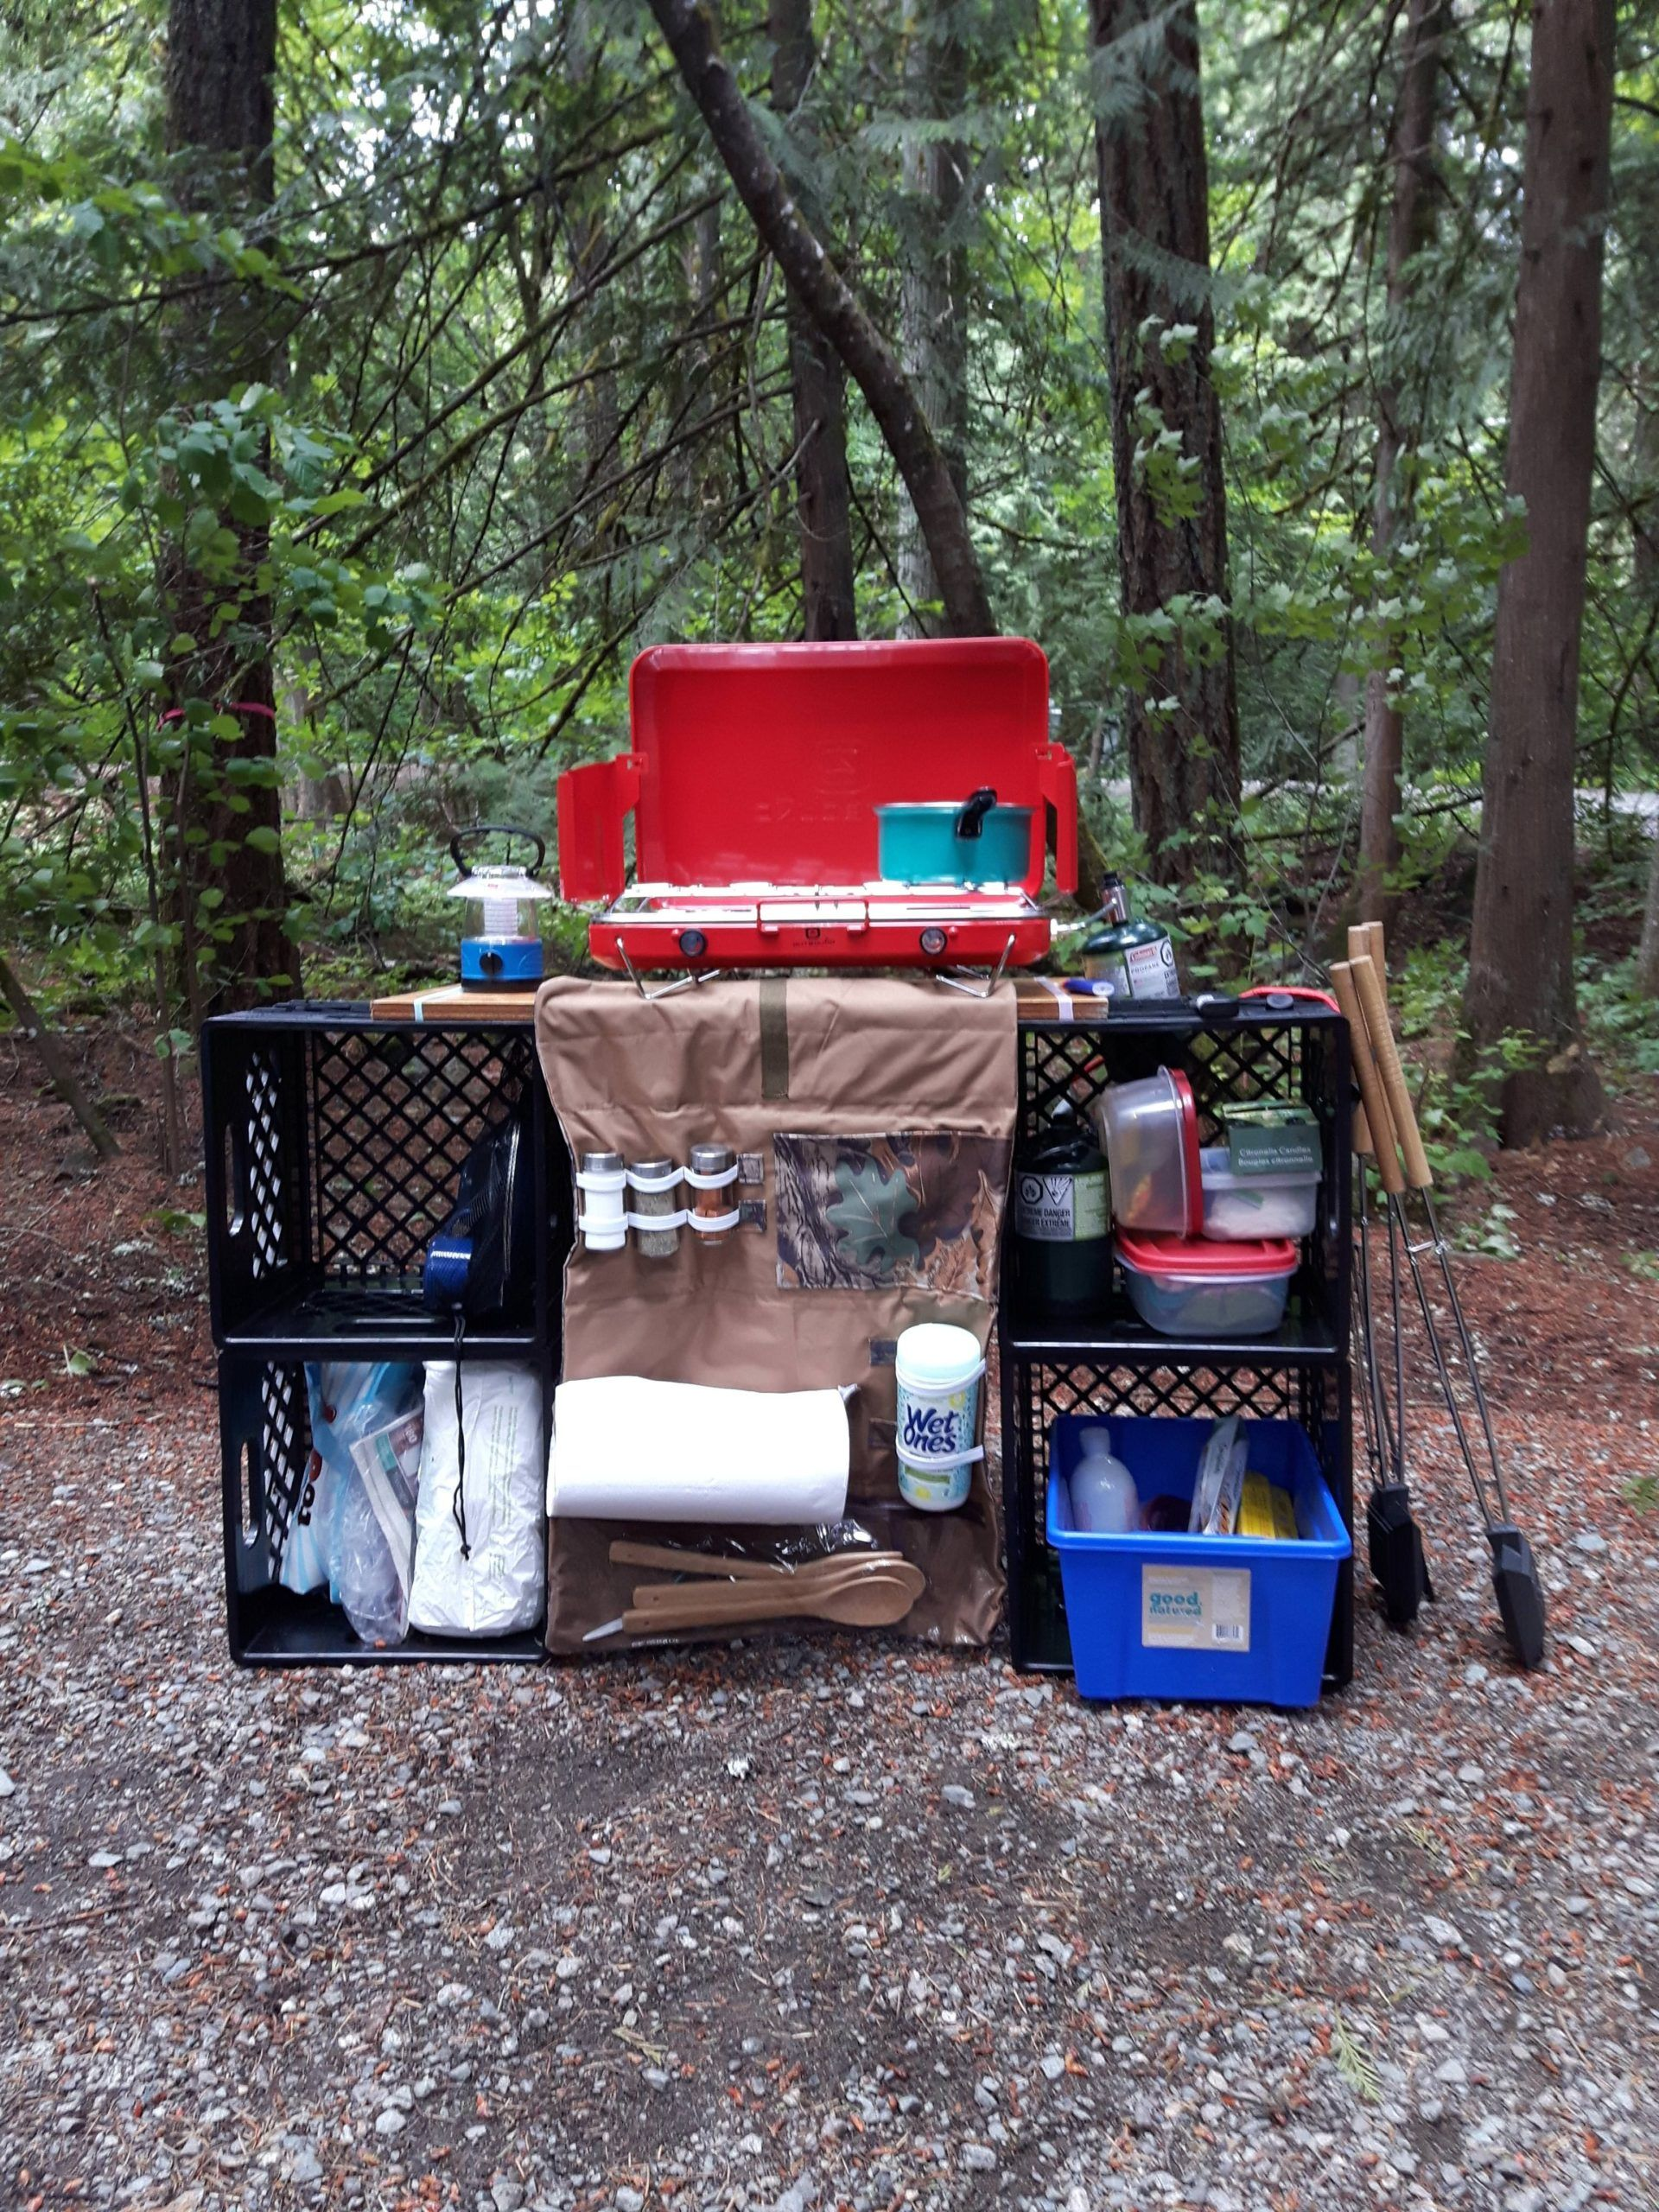 Diy Camp Kitchen Set Up In 2020 Outdoor Camping Kitchen Camping Kitchen Set Up Camping Kitchen Set